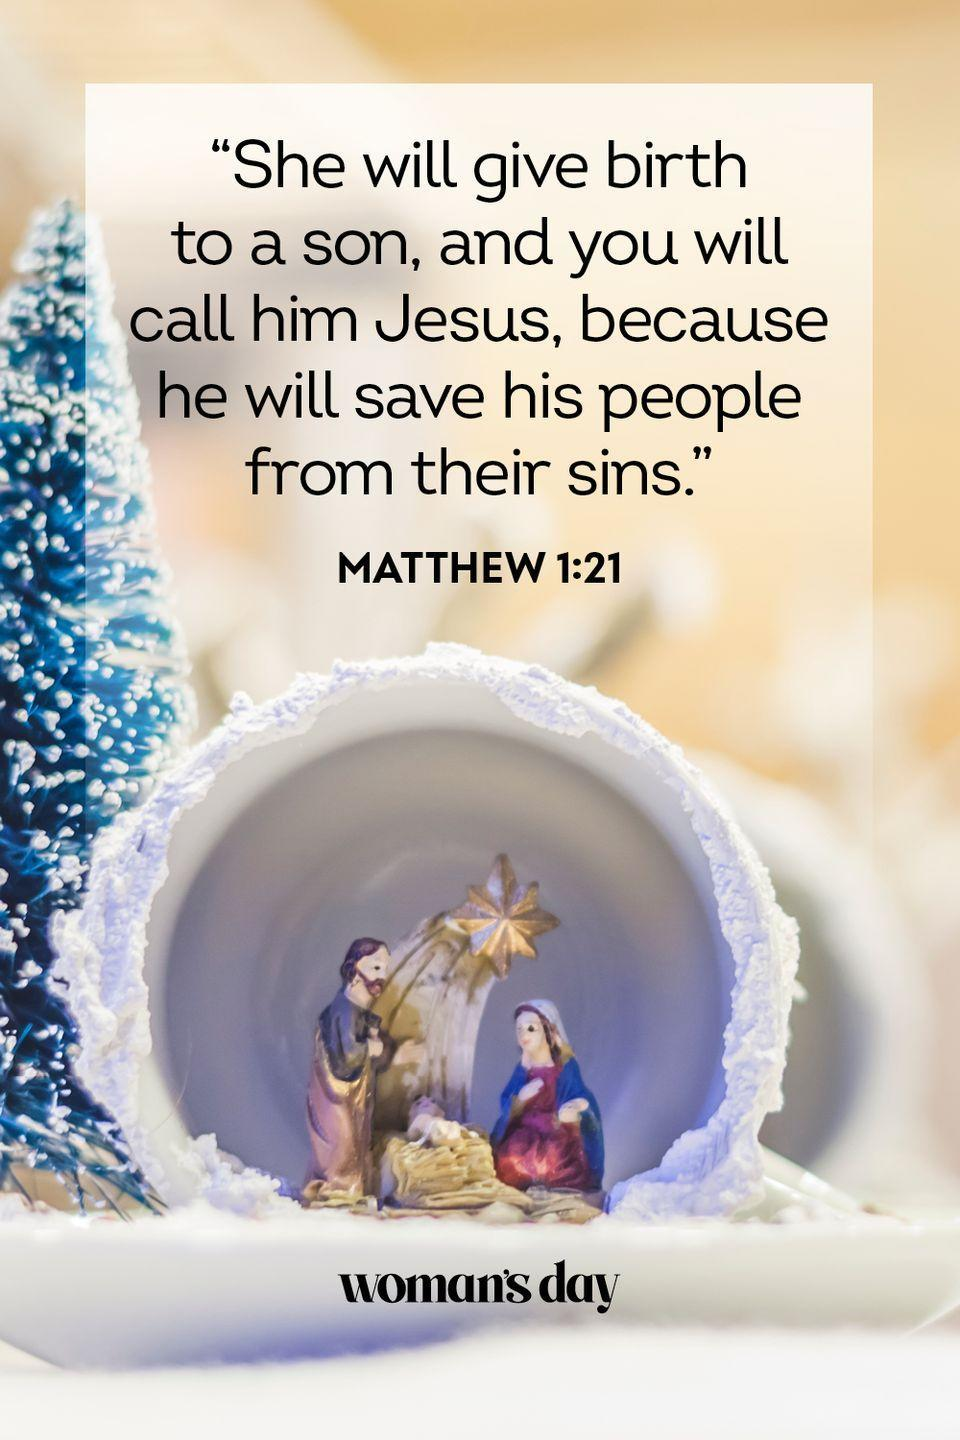 Pack of 24 Scenes from Scripture Religious Christmas Cards with Bible Verses